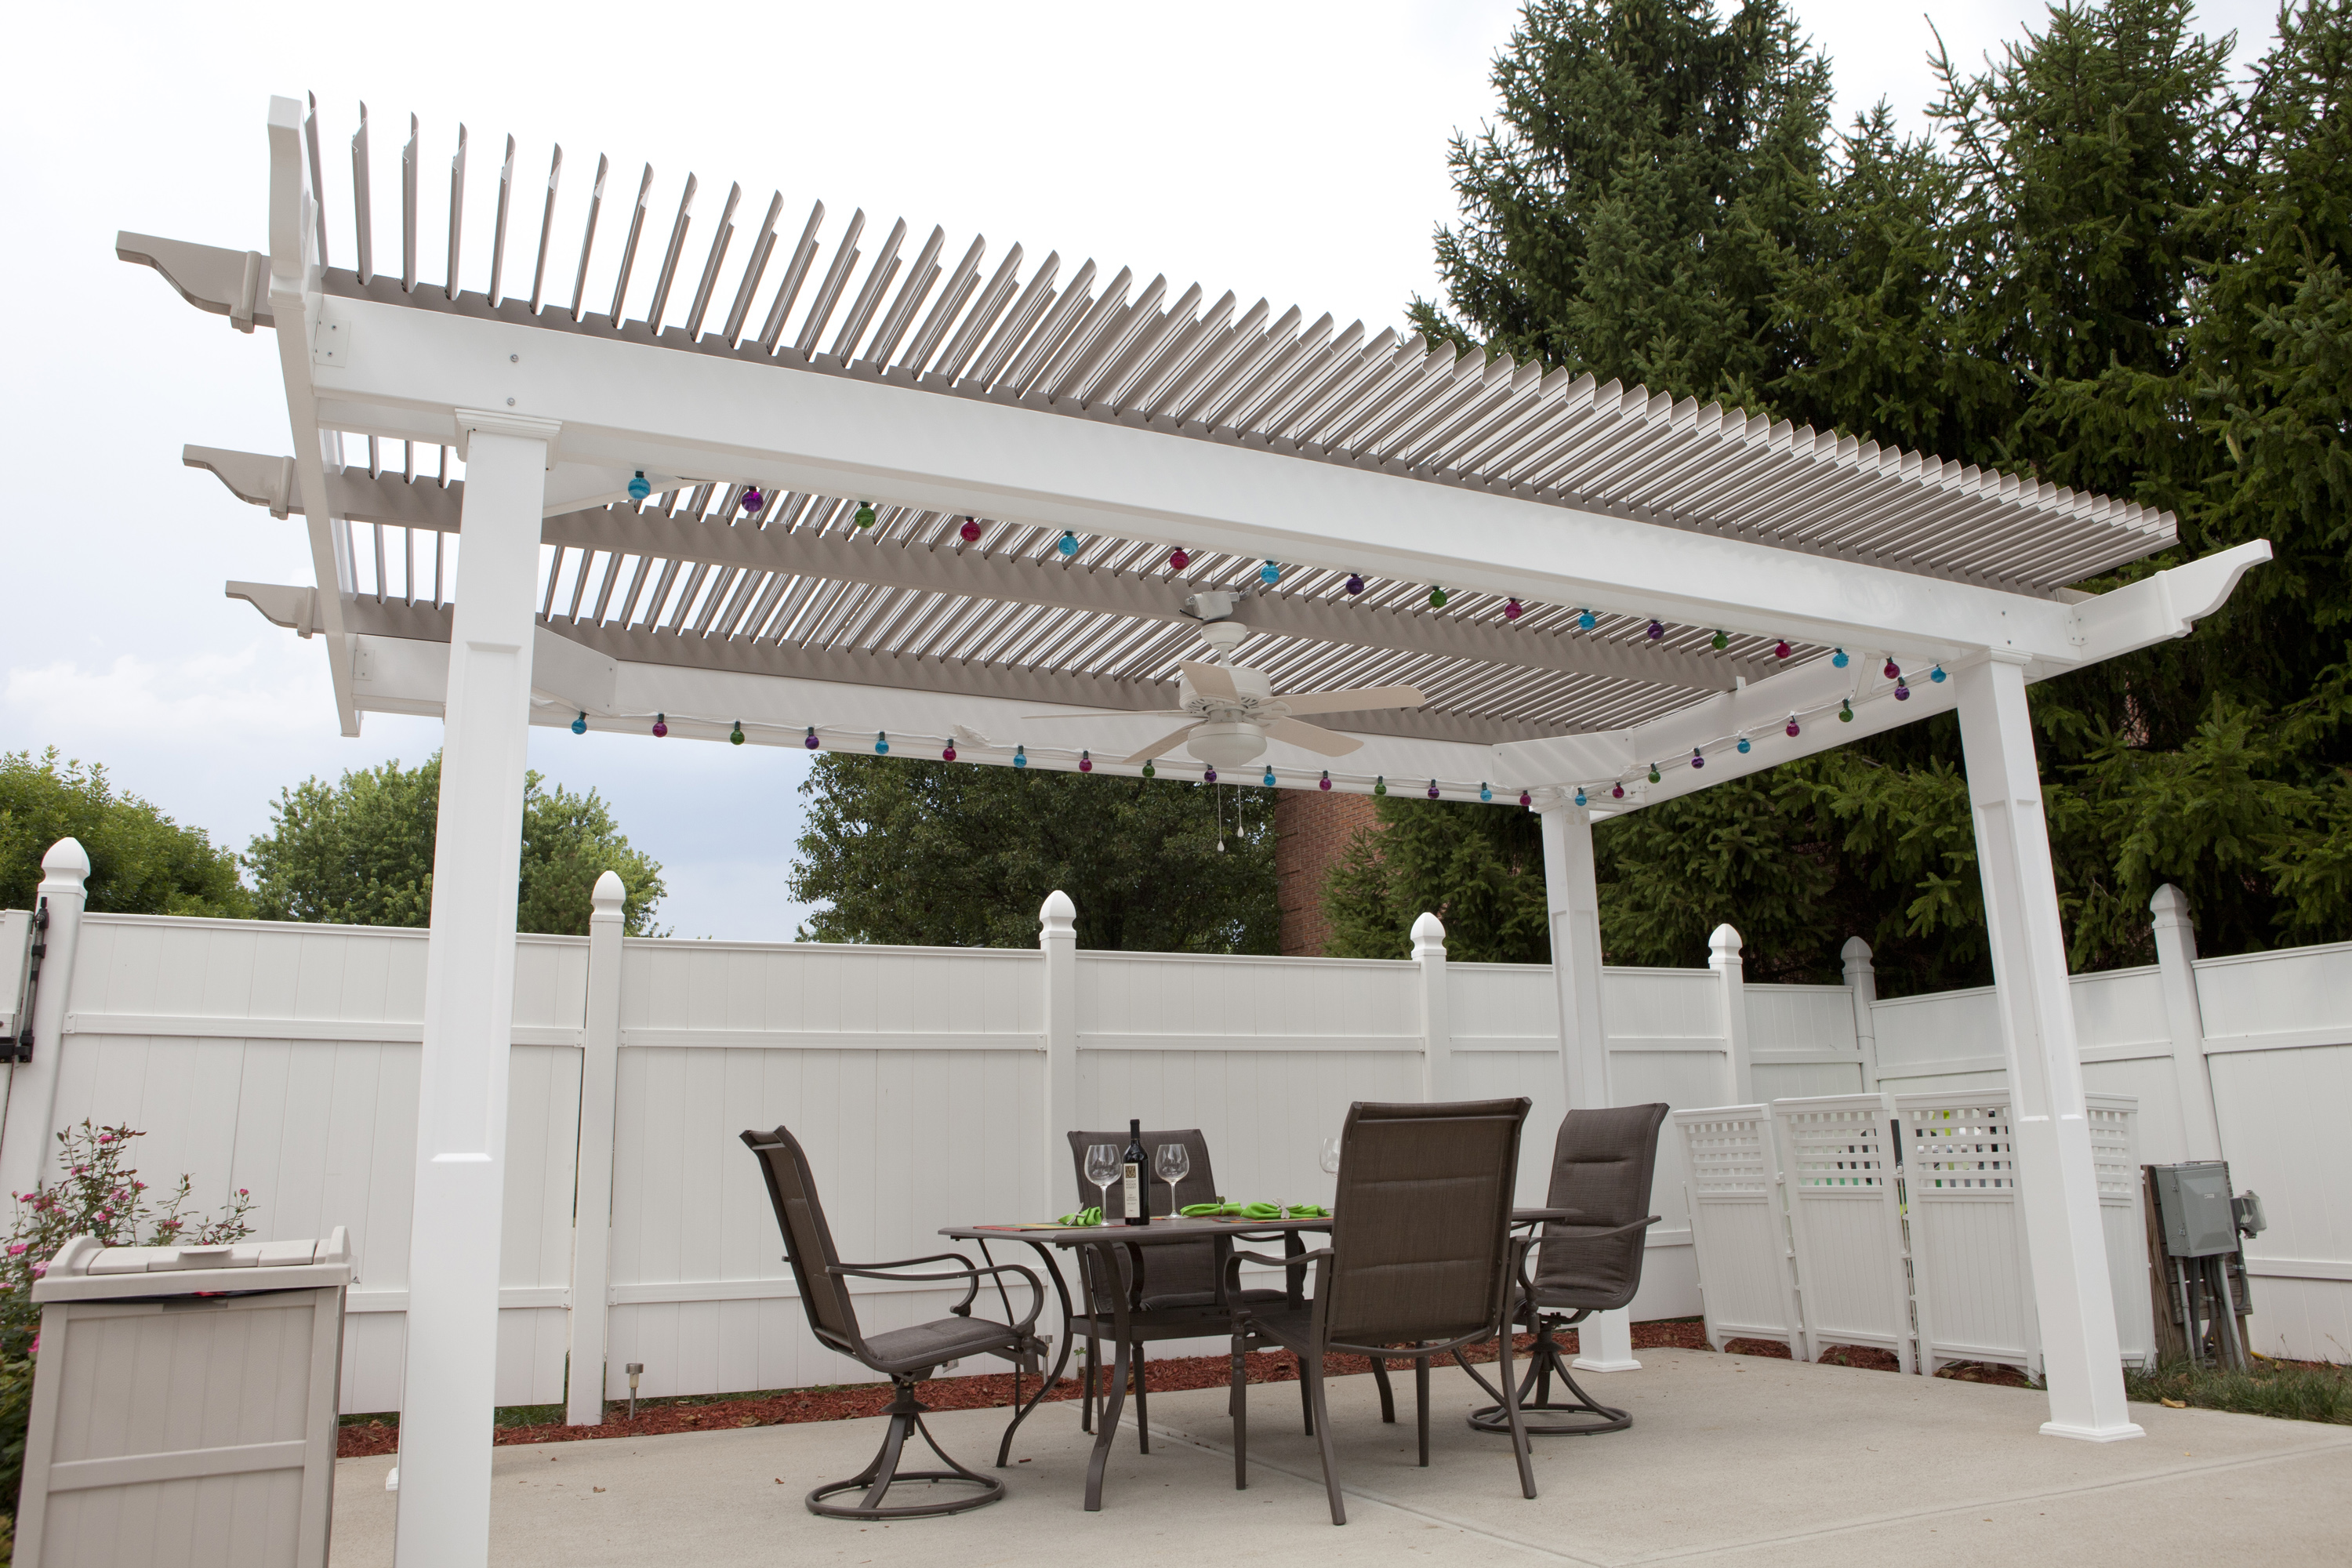 Backyard Patio Covers: From Usefulness To Style - HomesFeed on Backyard Patio Cover  id=13517